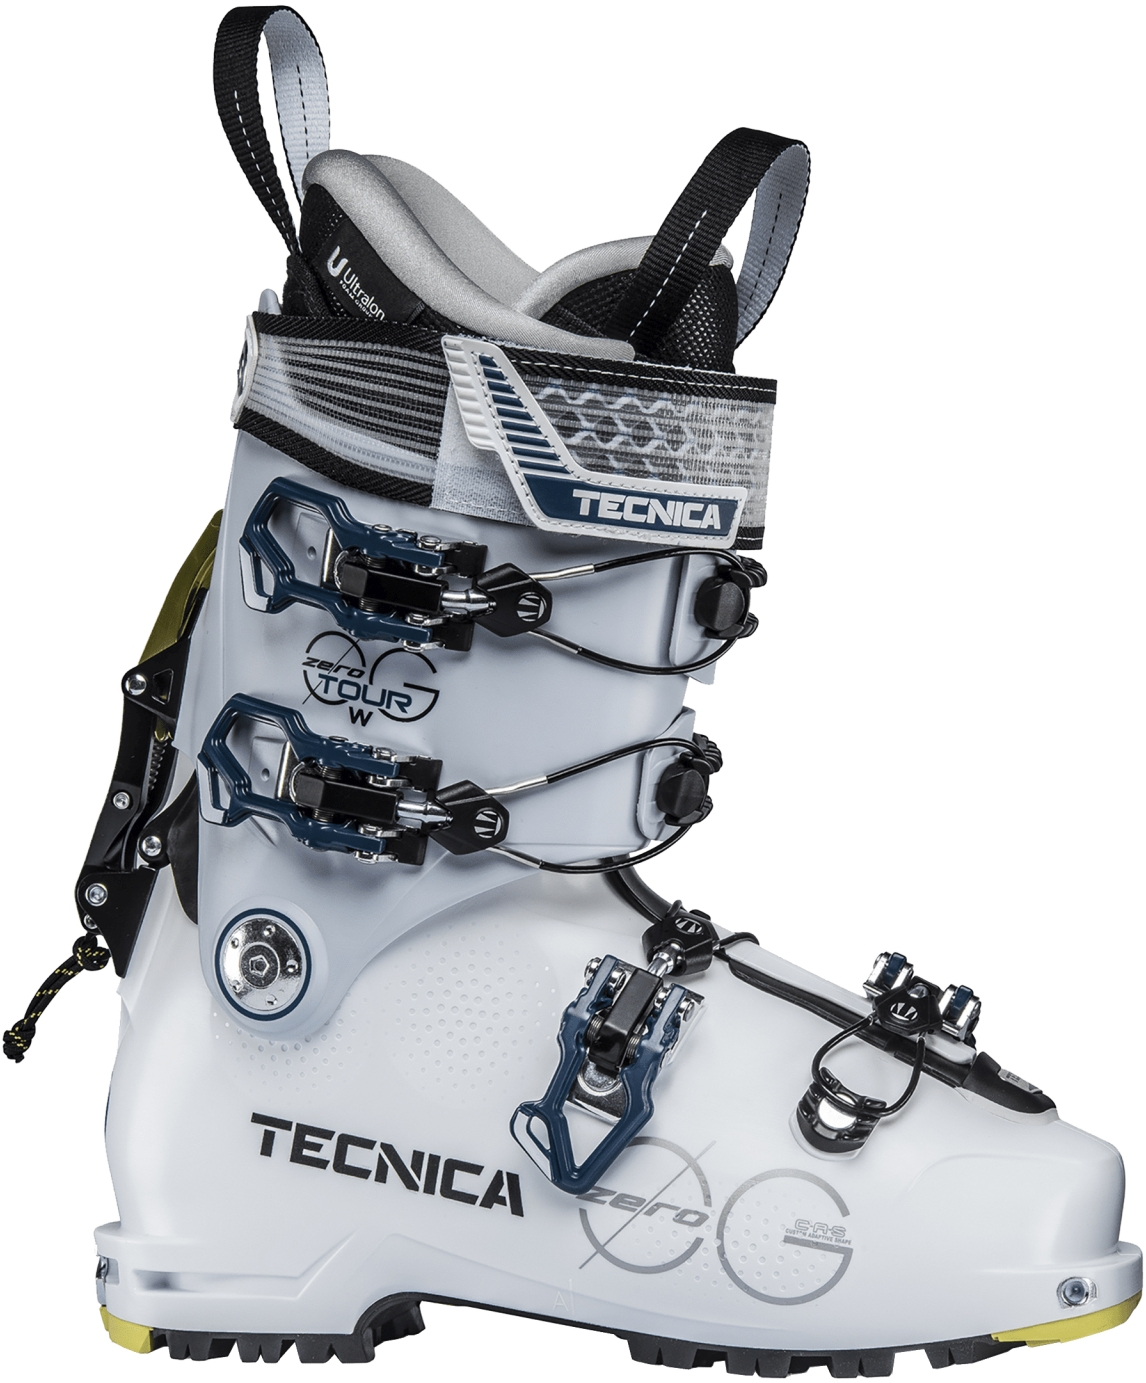 Tecnica Zero G Tour W - white/ice 265